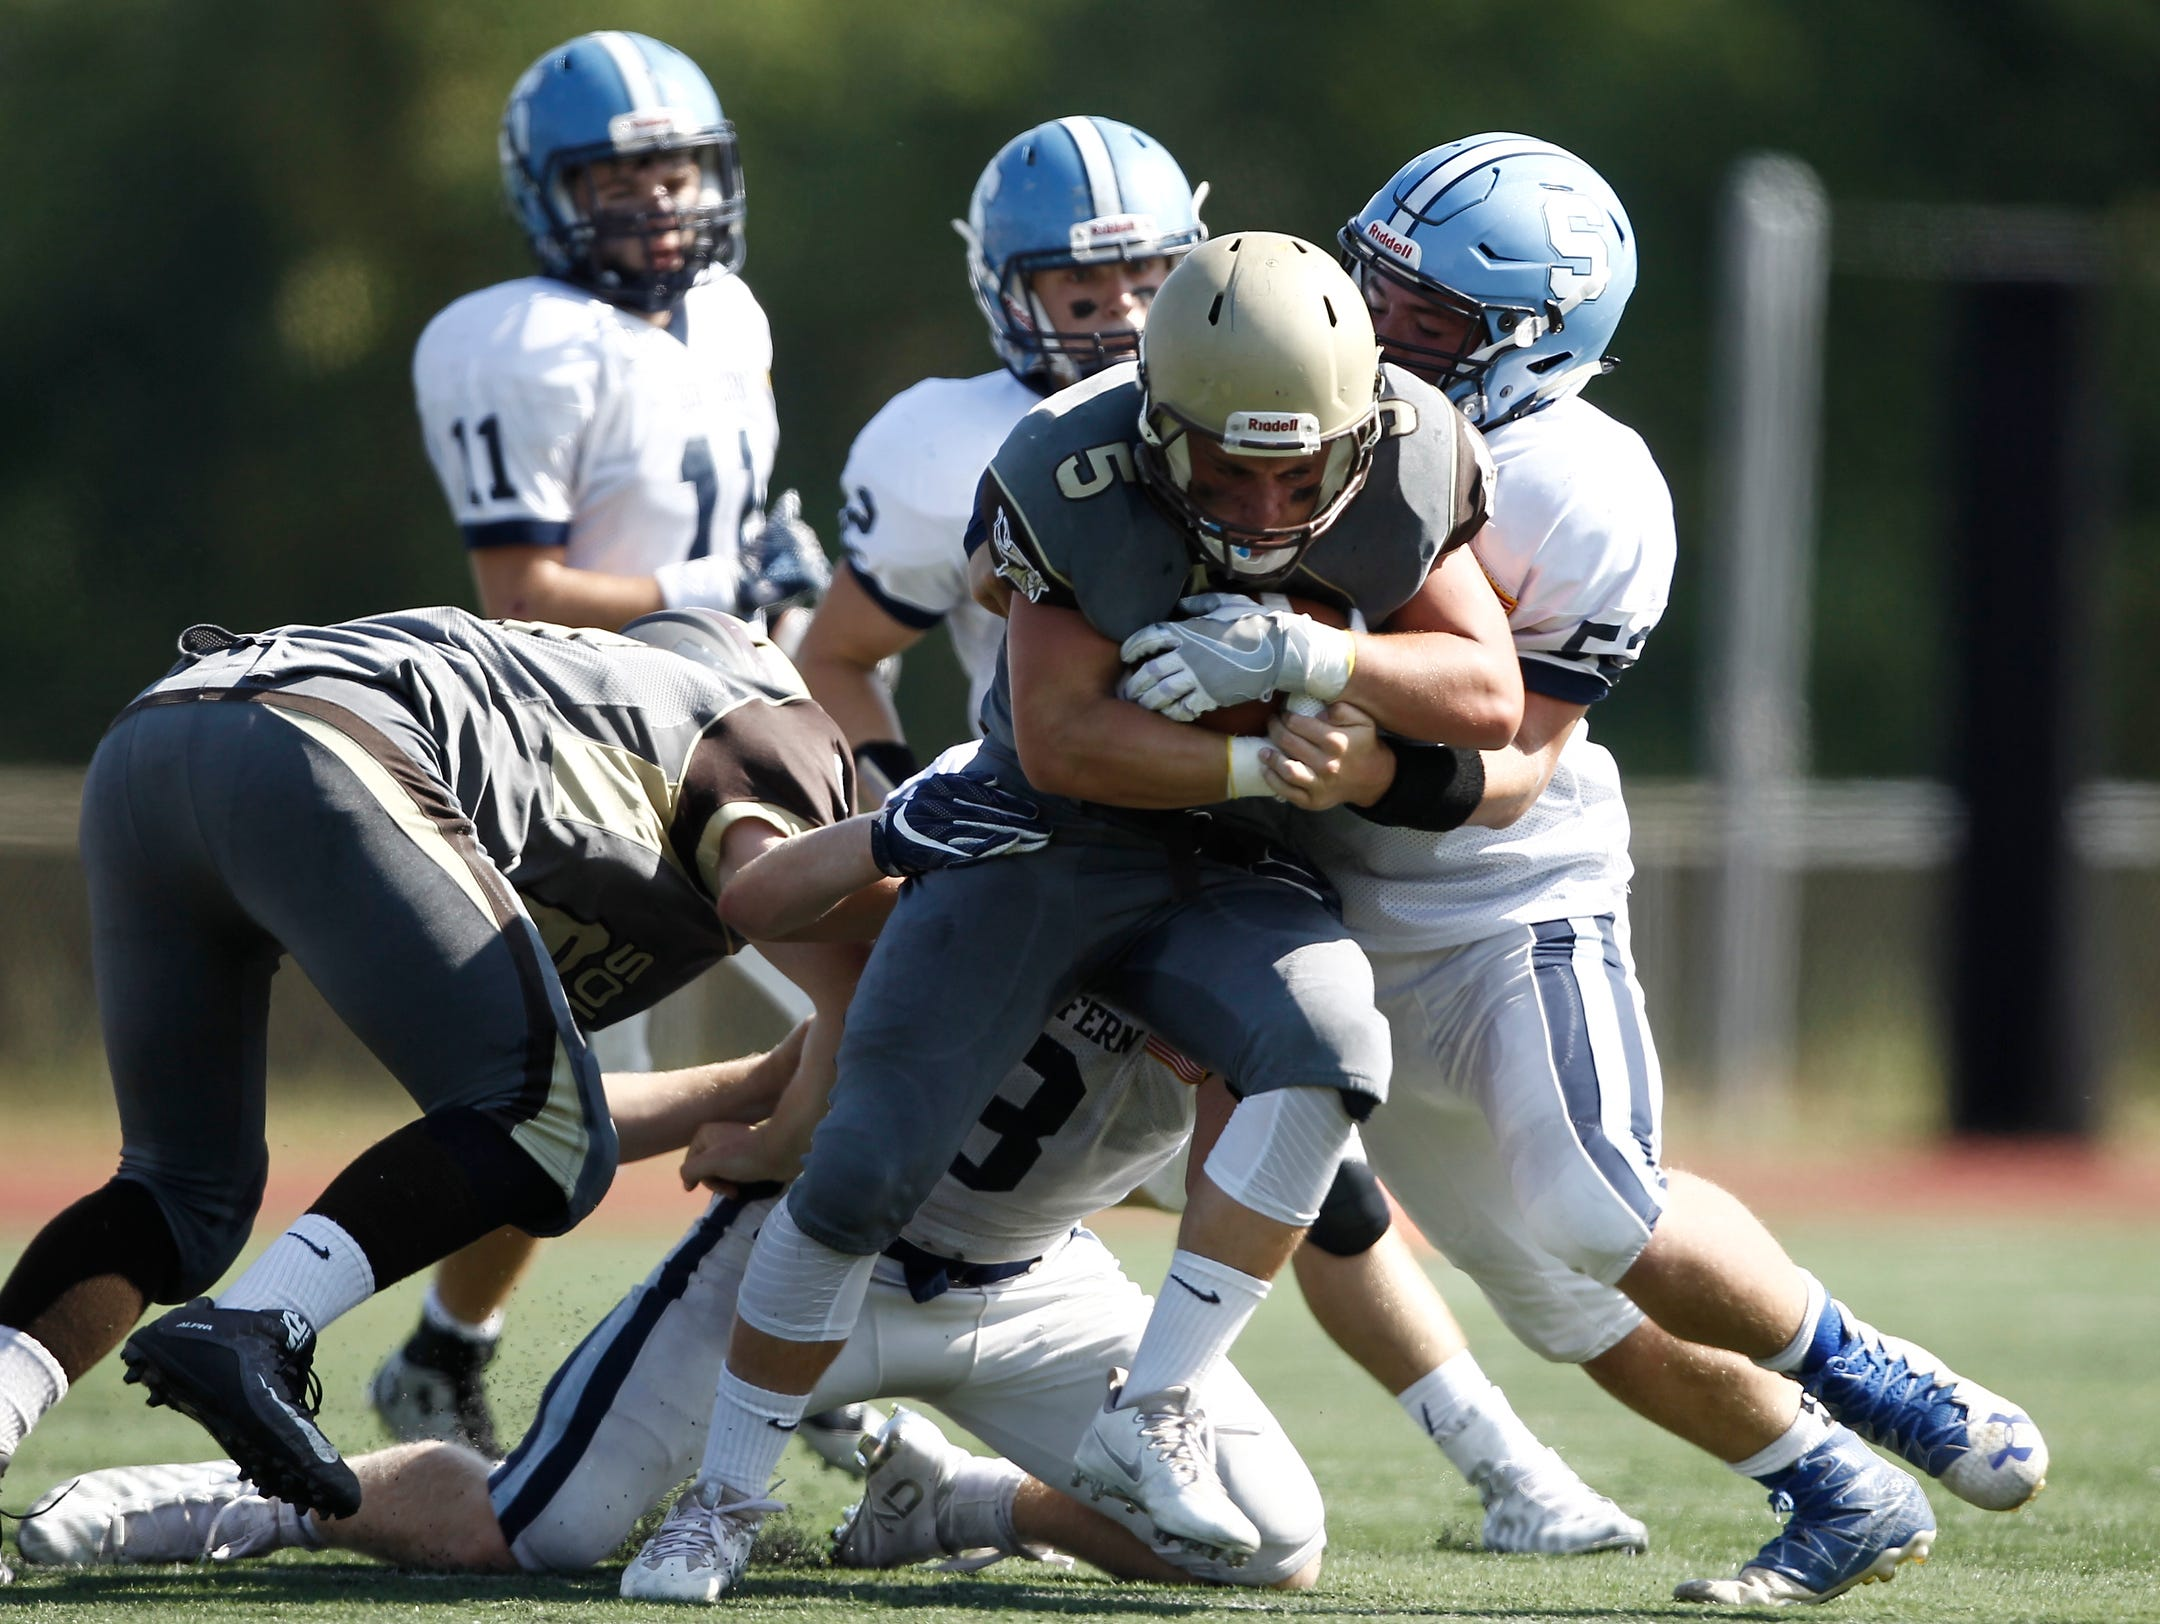 Clarkstown South's Ryan Thomas gets the carry during a football game at Clarkstown South High School on Saturday, September 17, 2016. South won 30-0.